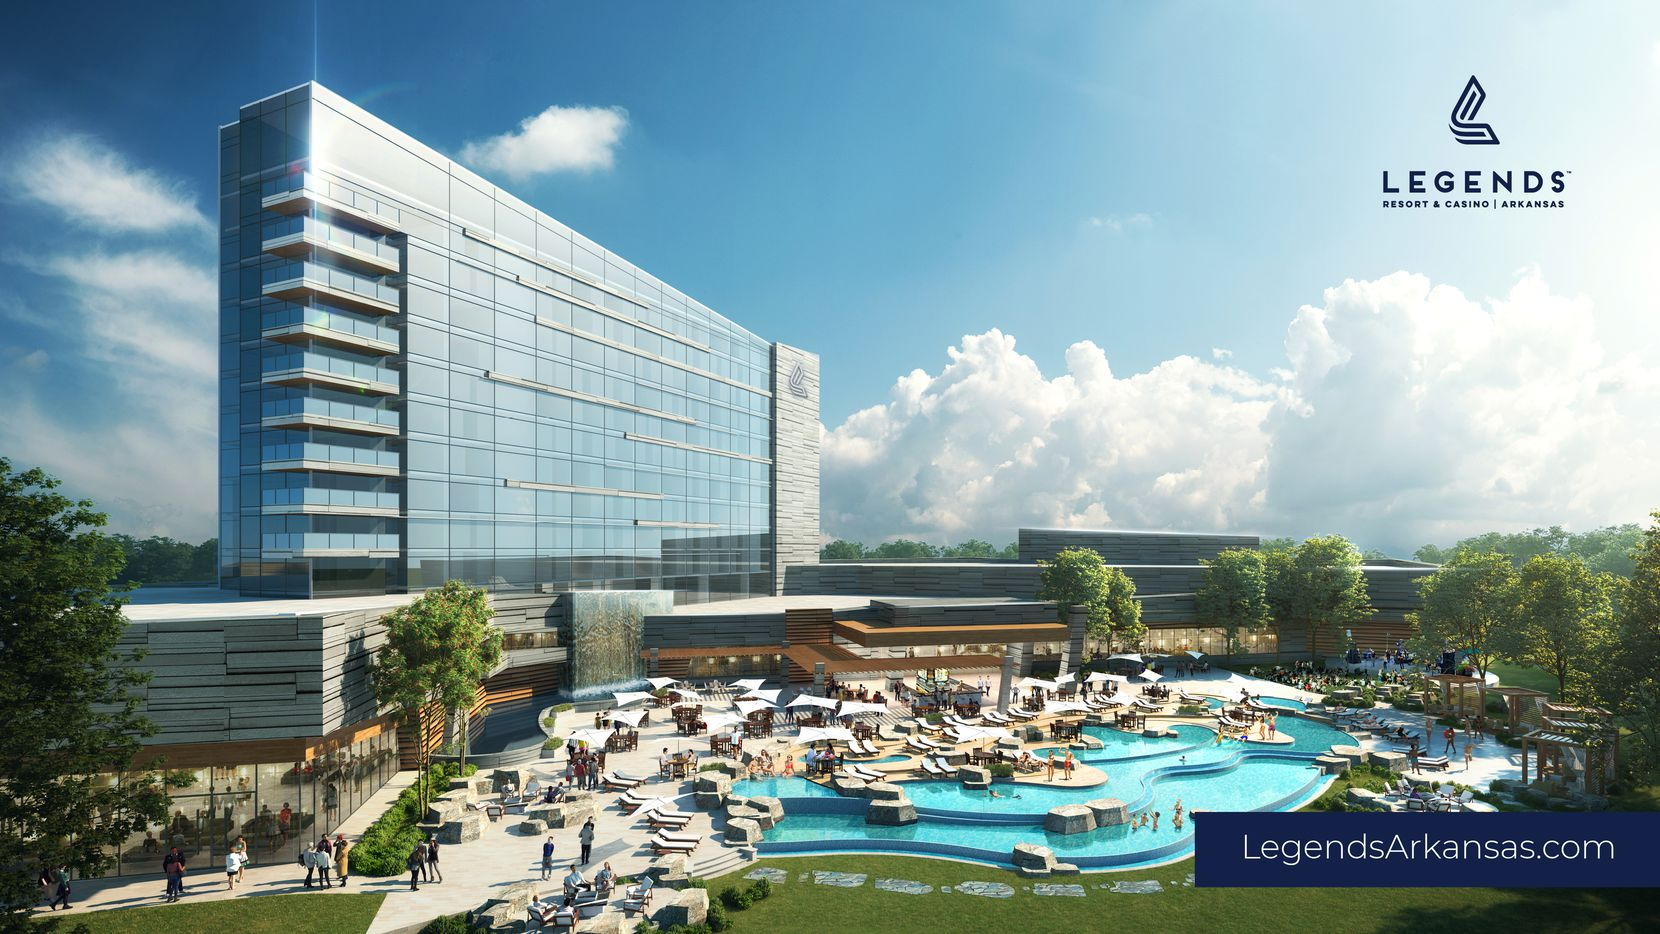 The Legends Resort & Casino Arkansas is proposed to be of the first full-service casinos in the state. Amenities would include 1200 slot machines, a 200-room luxury hotel and an outdoor water park.